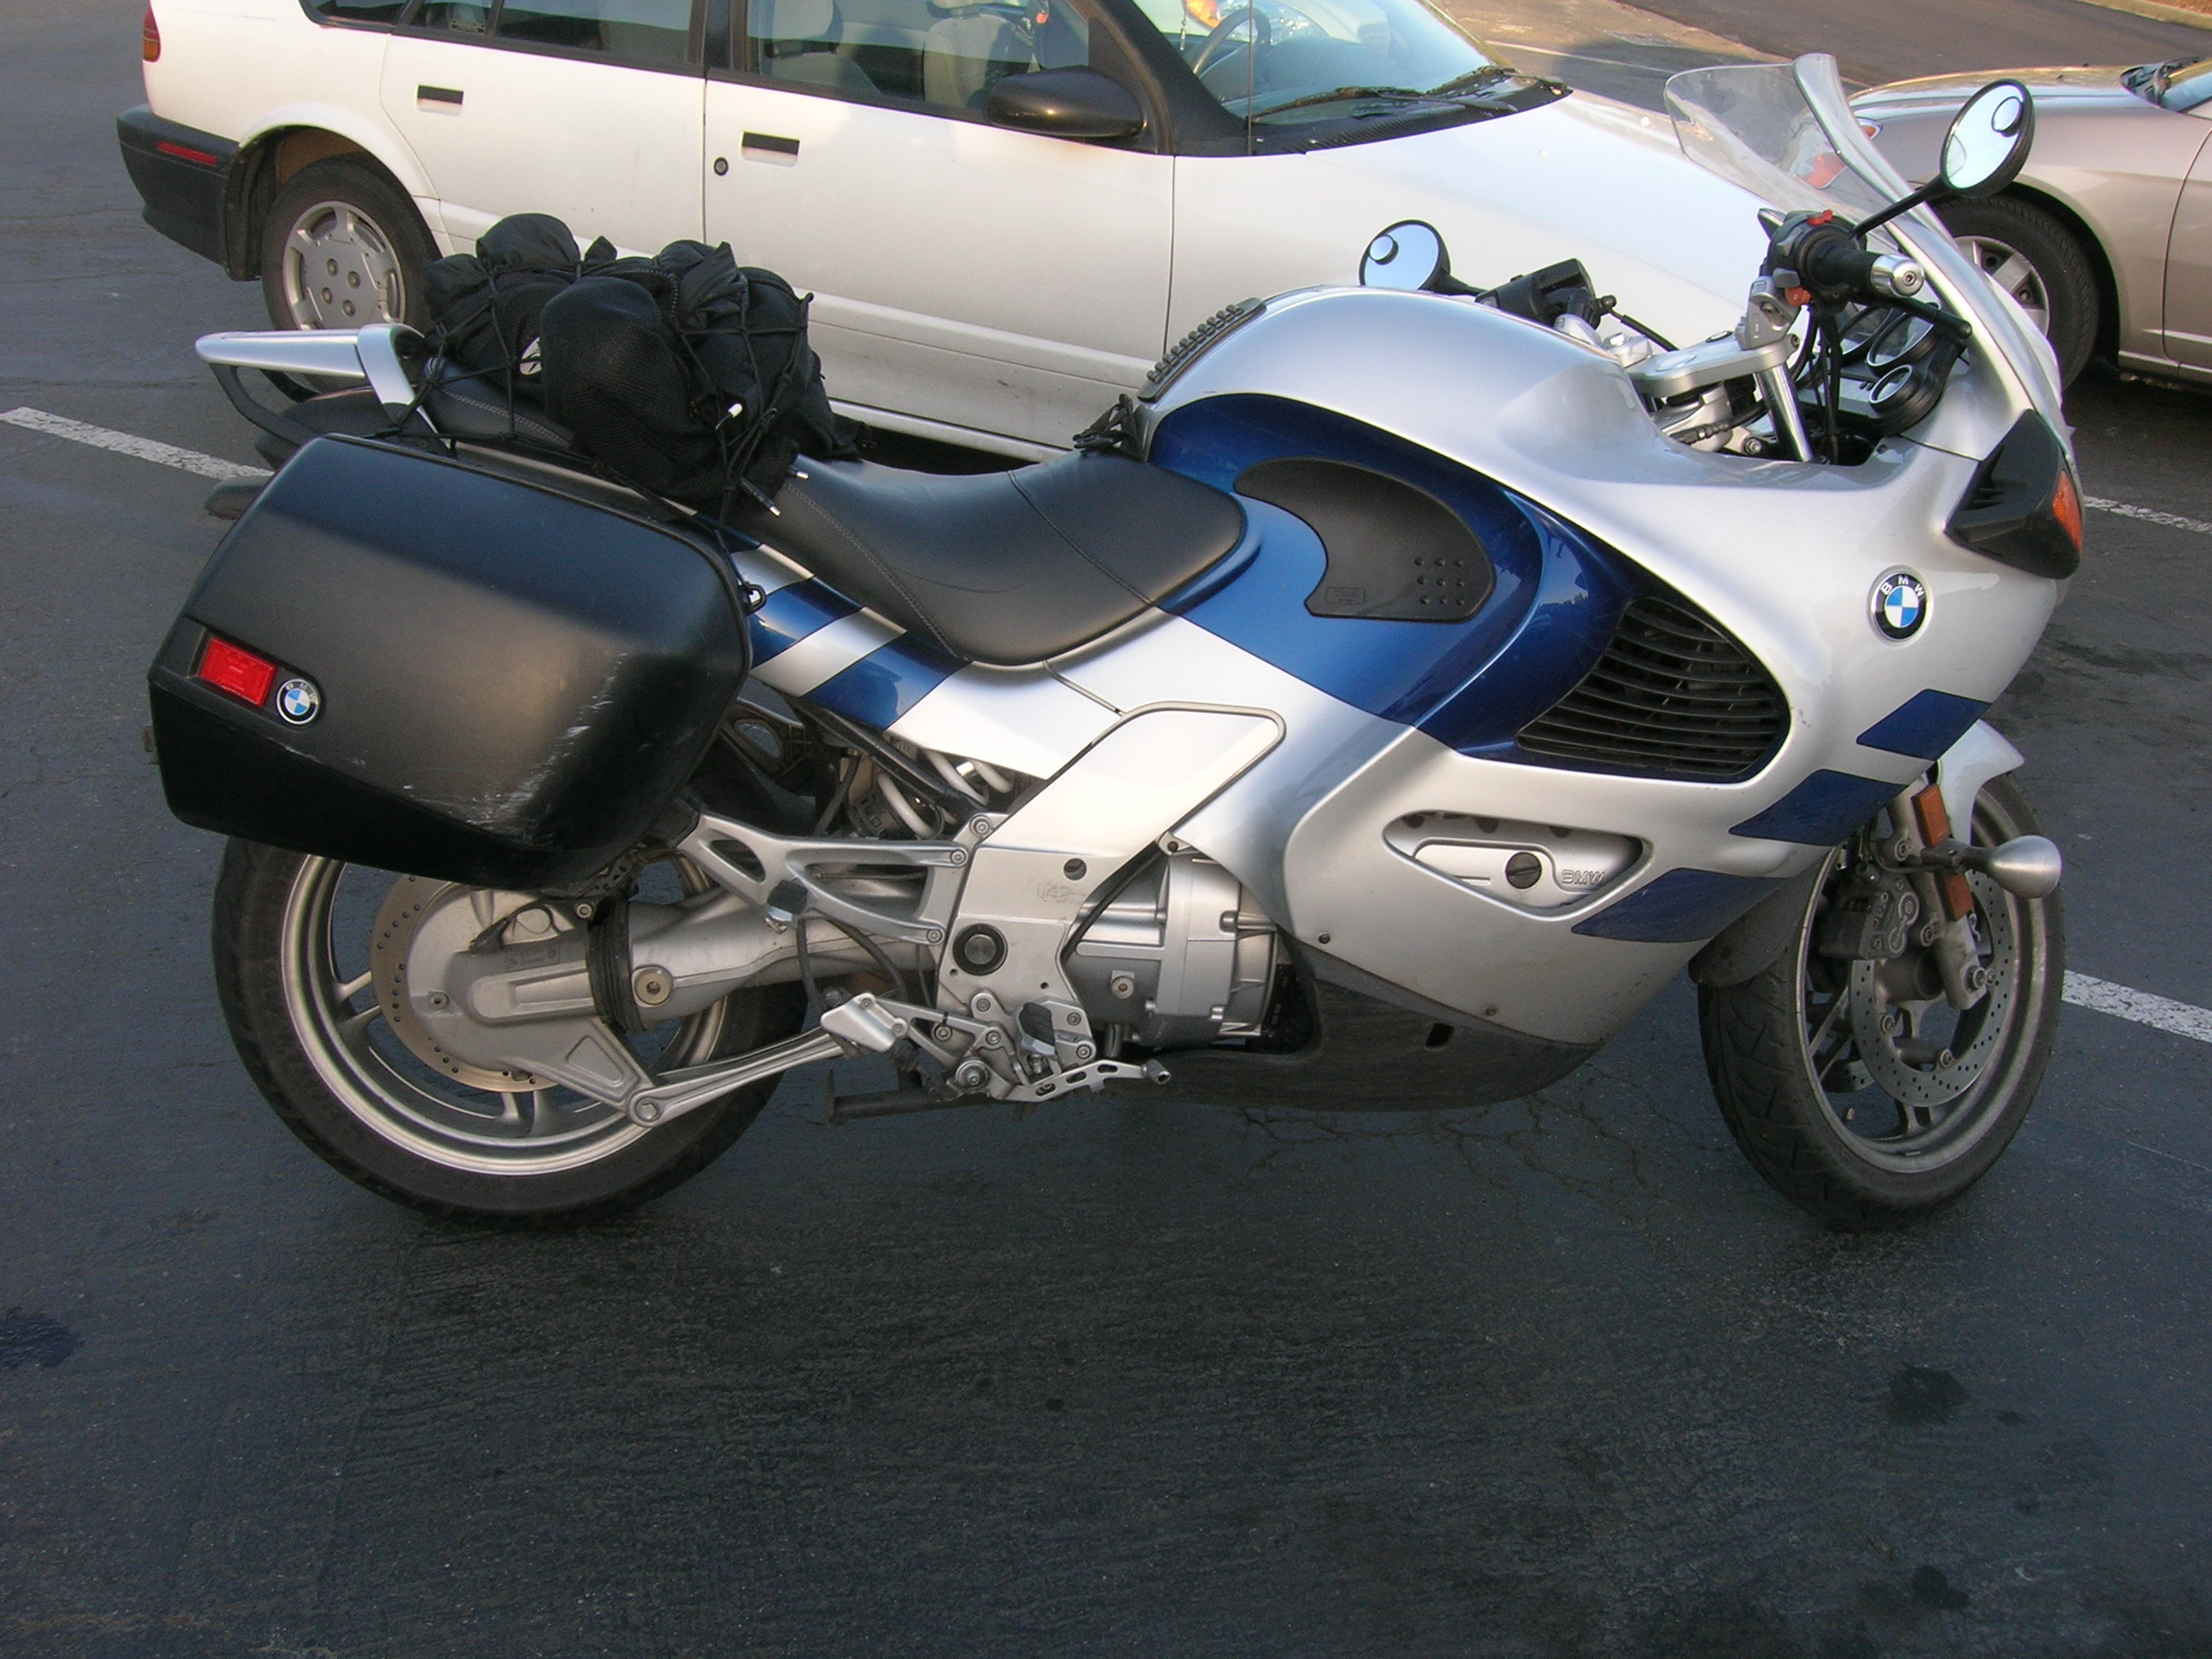 BMW K1200RS 1999 images #43962